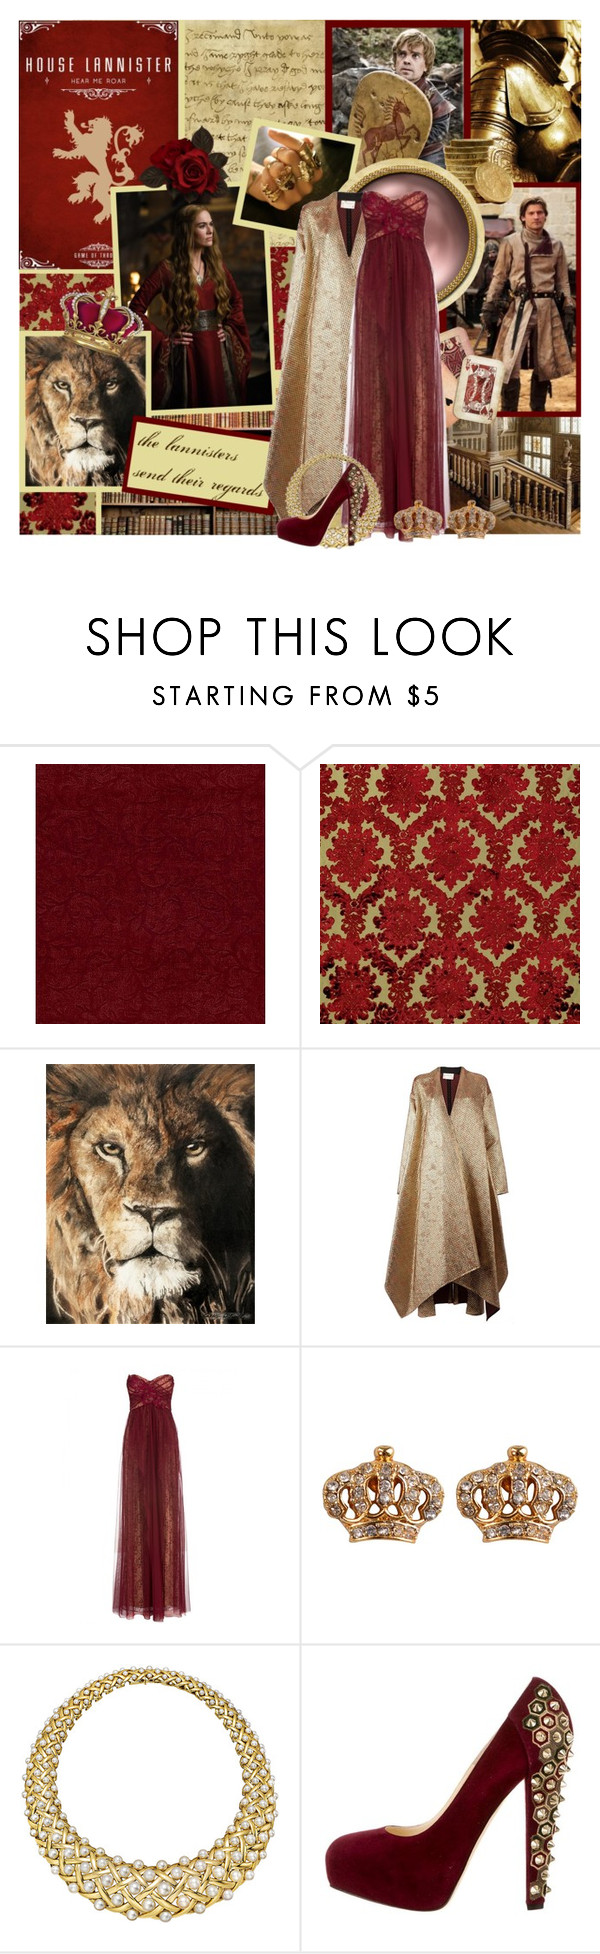 """""""House Lannister -- GOT Battle Round 01"""" by evil-laugh ❤ liked on Polyvore featuring Wolsey, Maison Rabih Kayrouz, Notte by Marchesa, Juicy Couture, Chanel and Brian Atwood"""